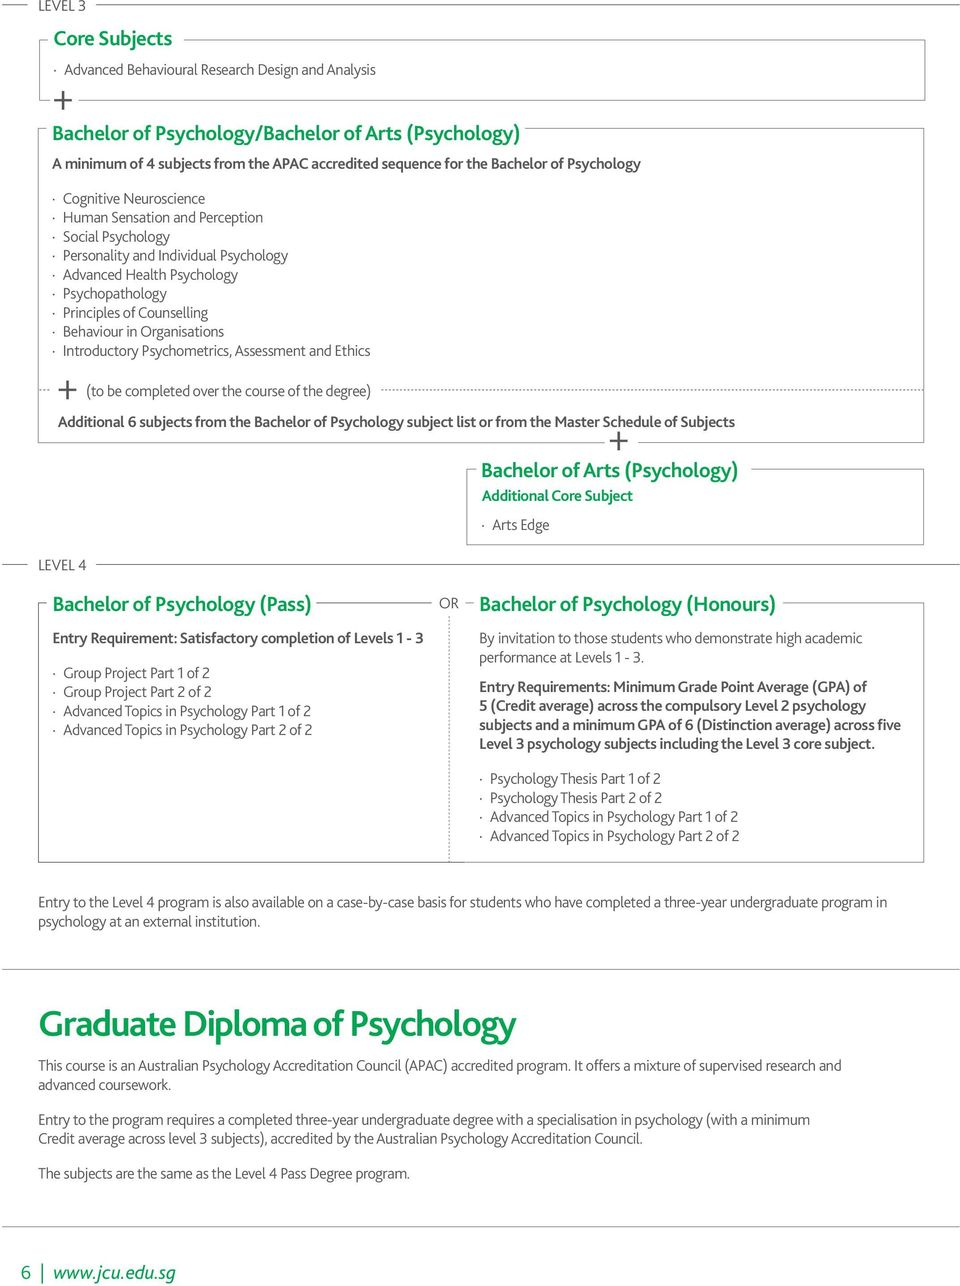 Counselling Behaviour in Organisations Introductory Psychometrics, Assessment and Ethics + LEVEL 4 (to be completed over the course of the degree) Additional 6 subjects from the Bachelor of